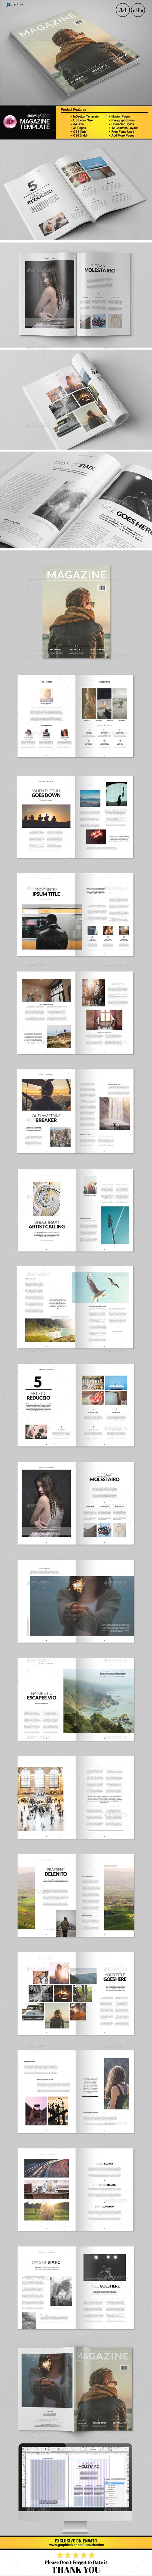 Clean Elegant Magazine | Template, Magazines and Print templates